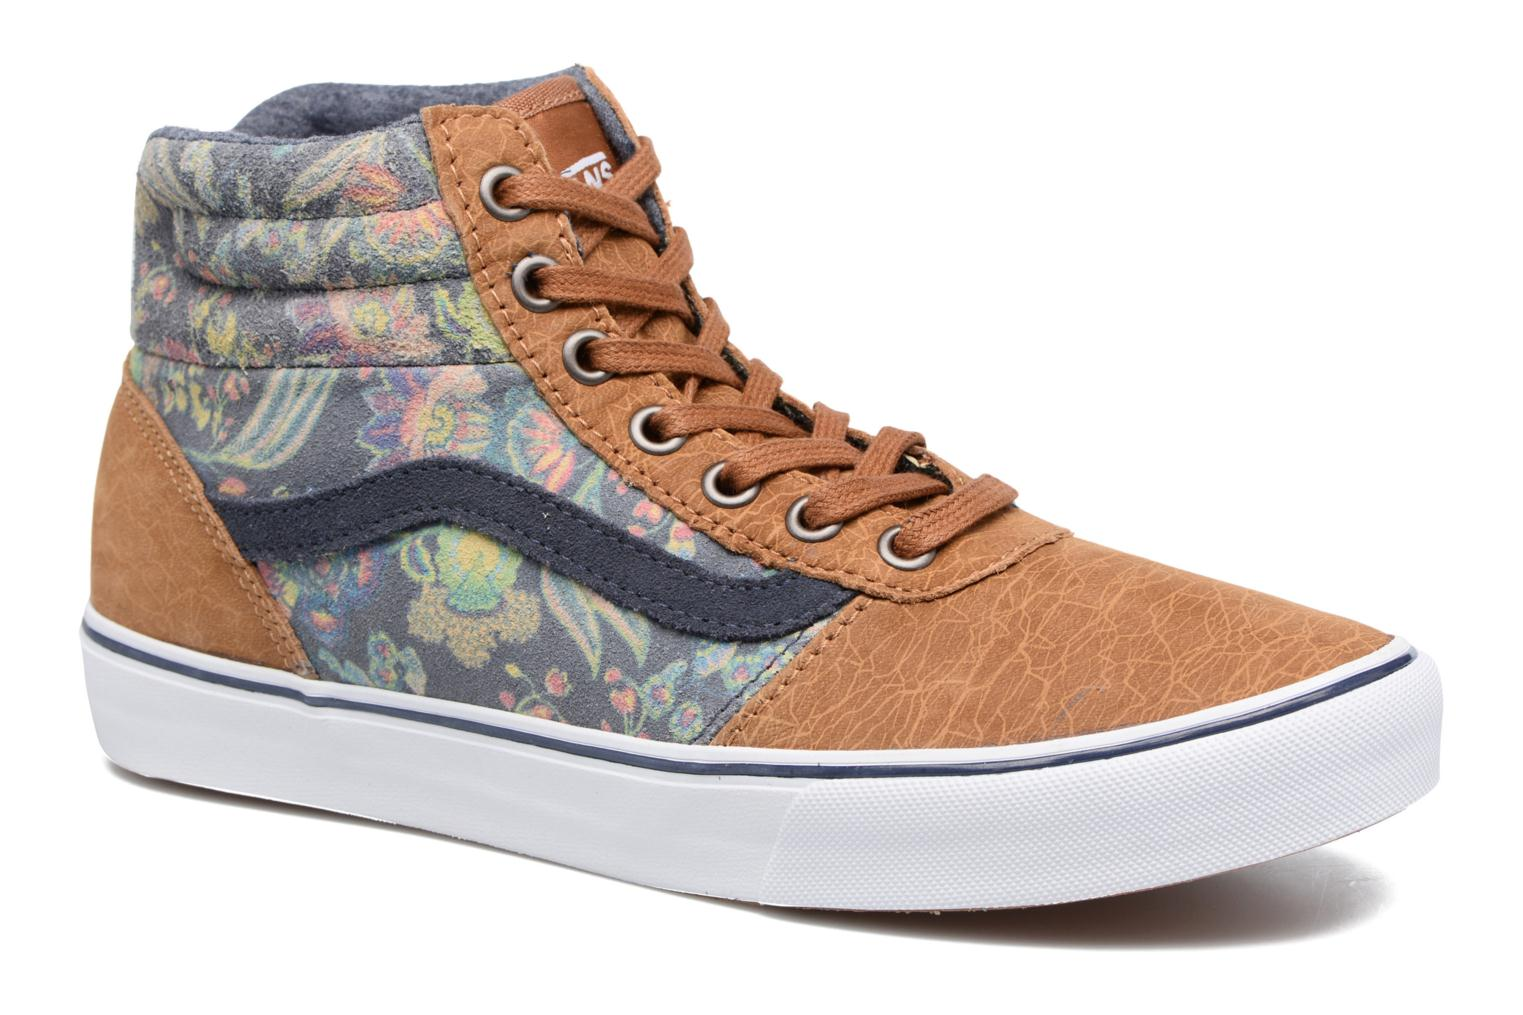 Milton Hi W (MTE Flower Suede) Brown